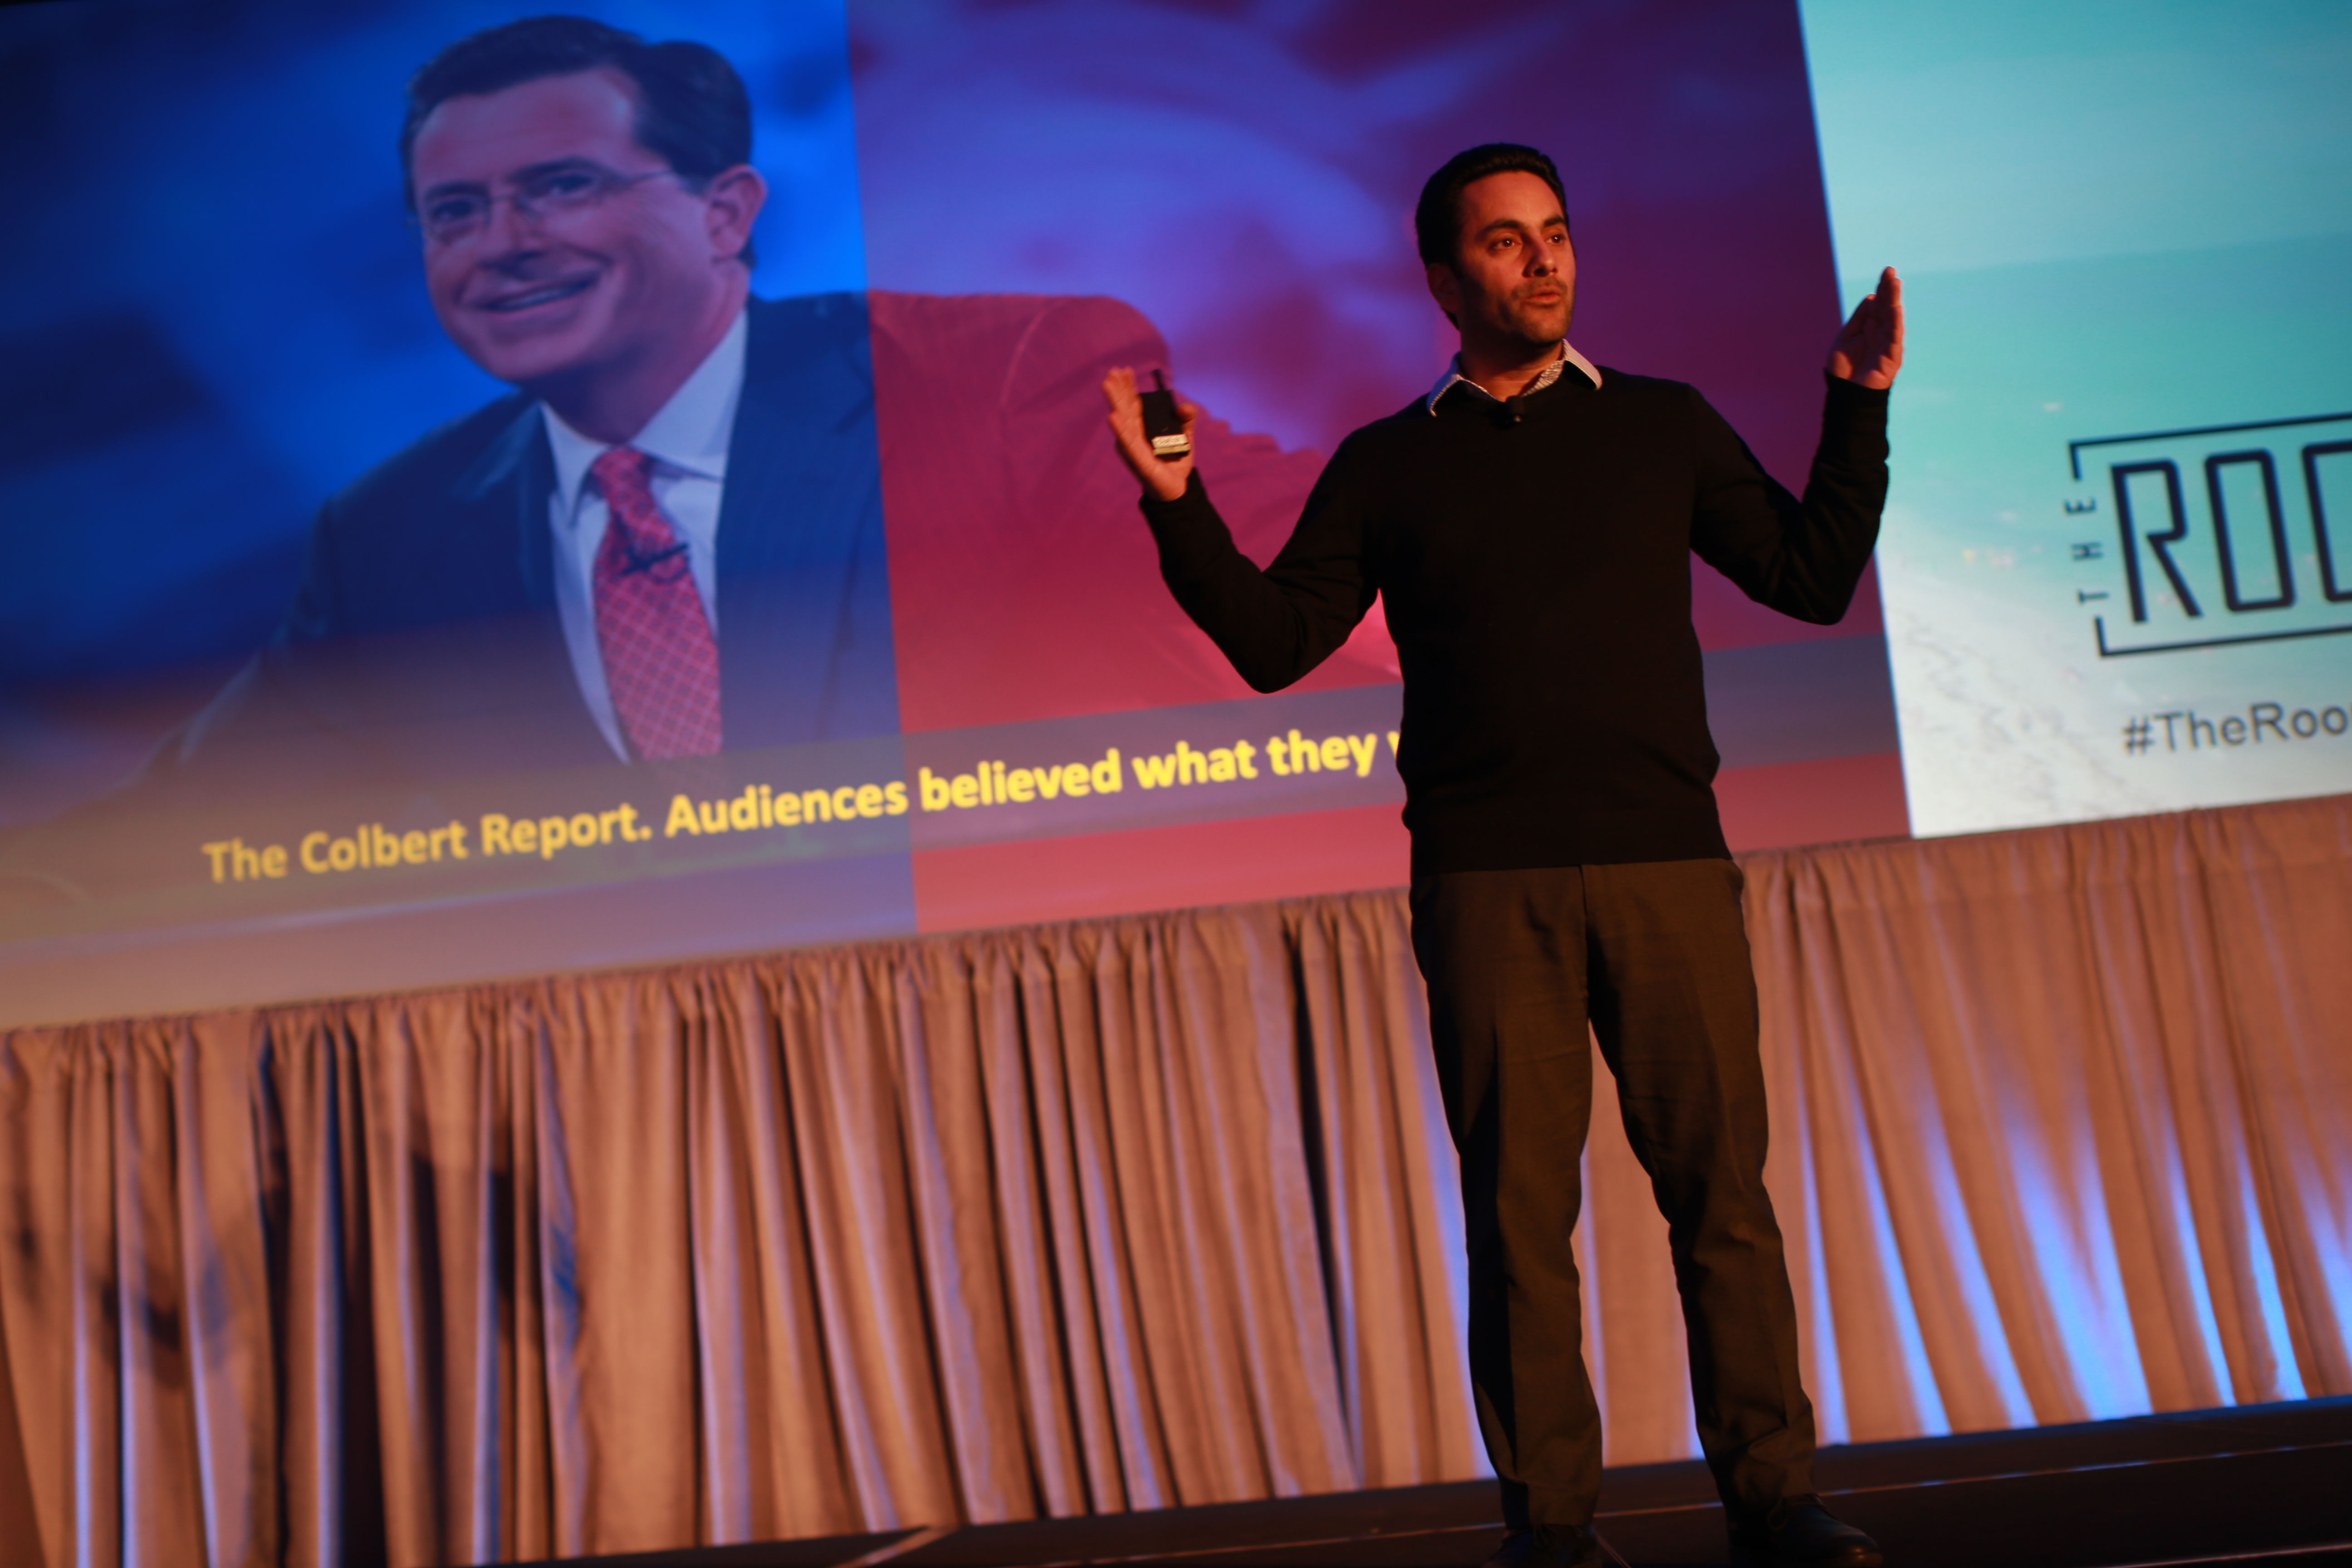 At The Room - an exclusive marketing summit in Miami, Florida